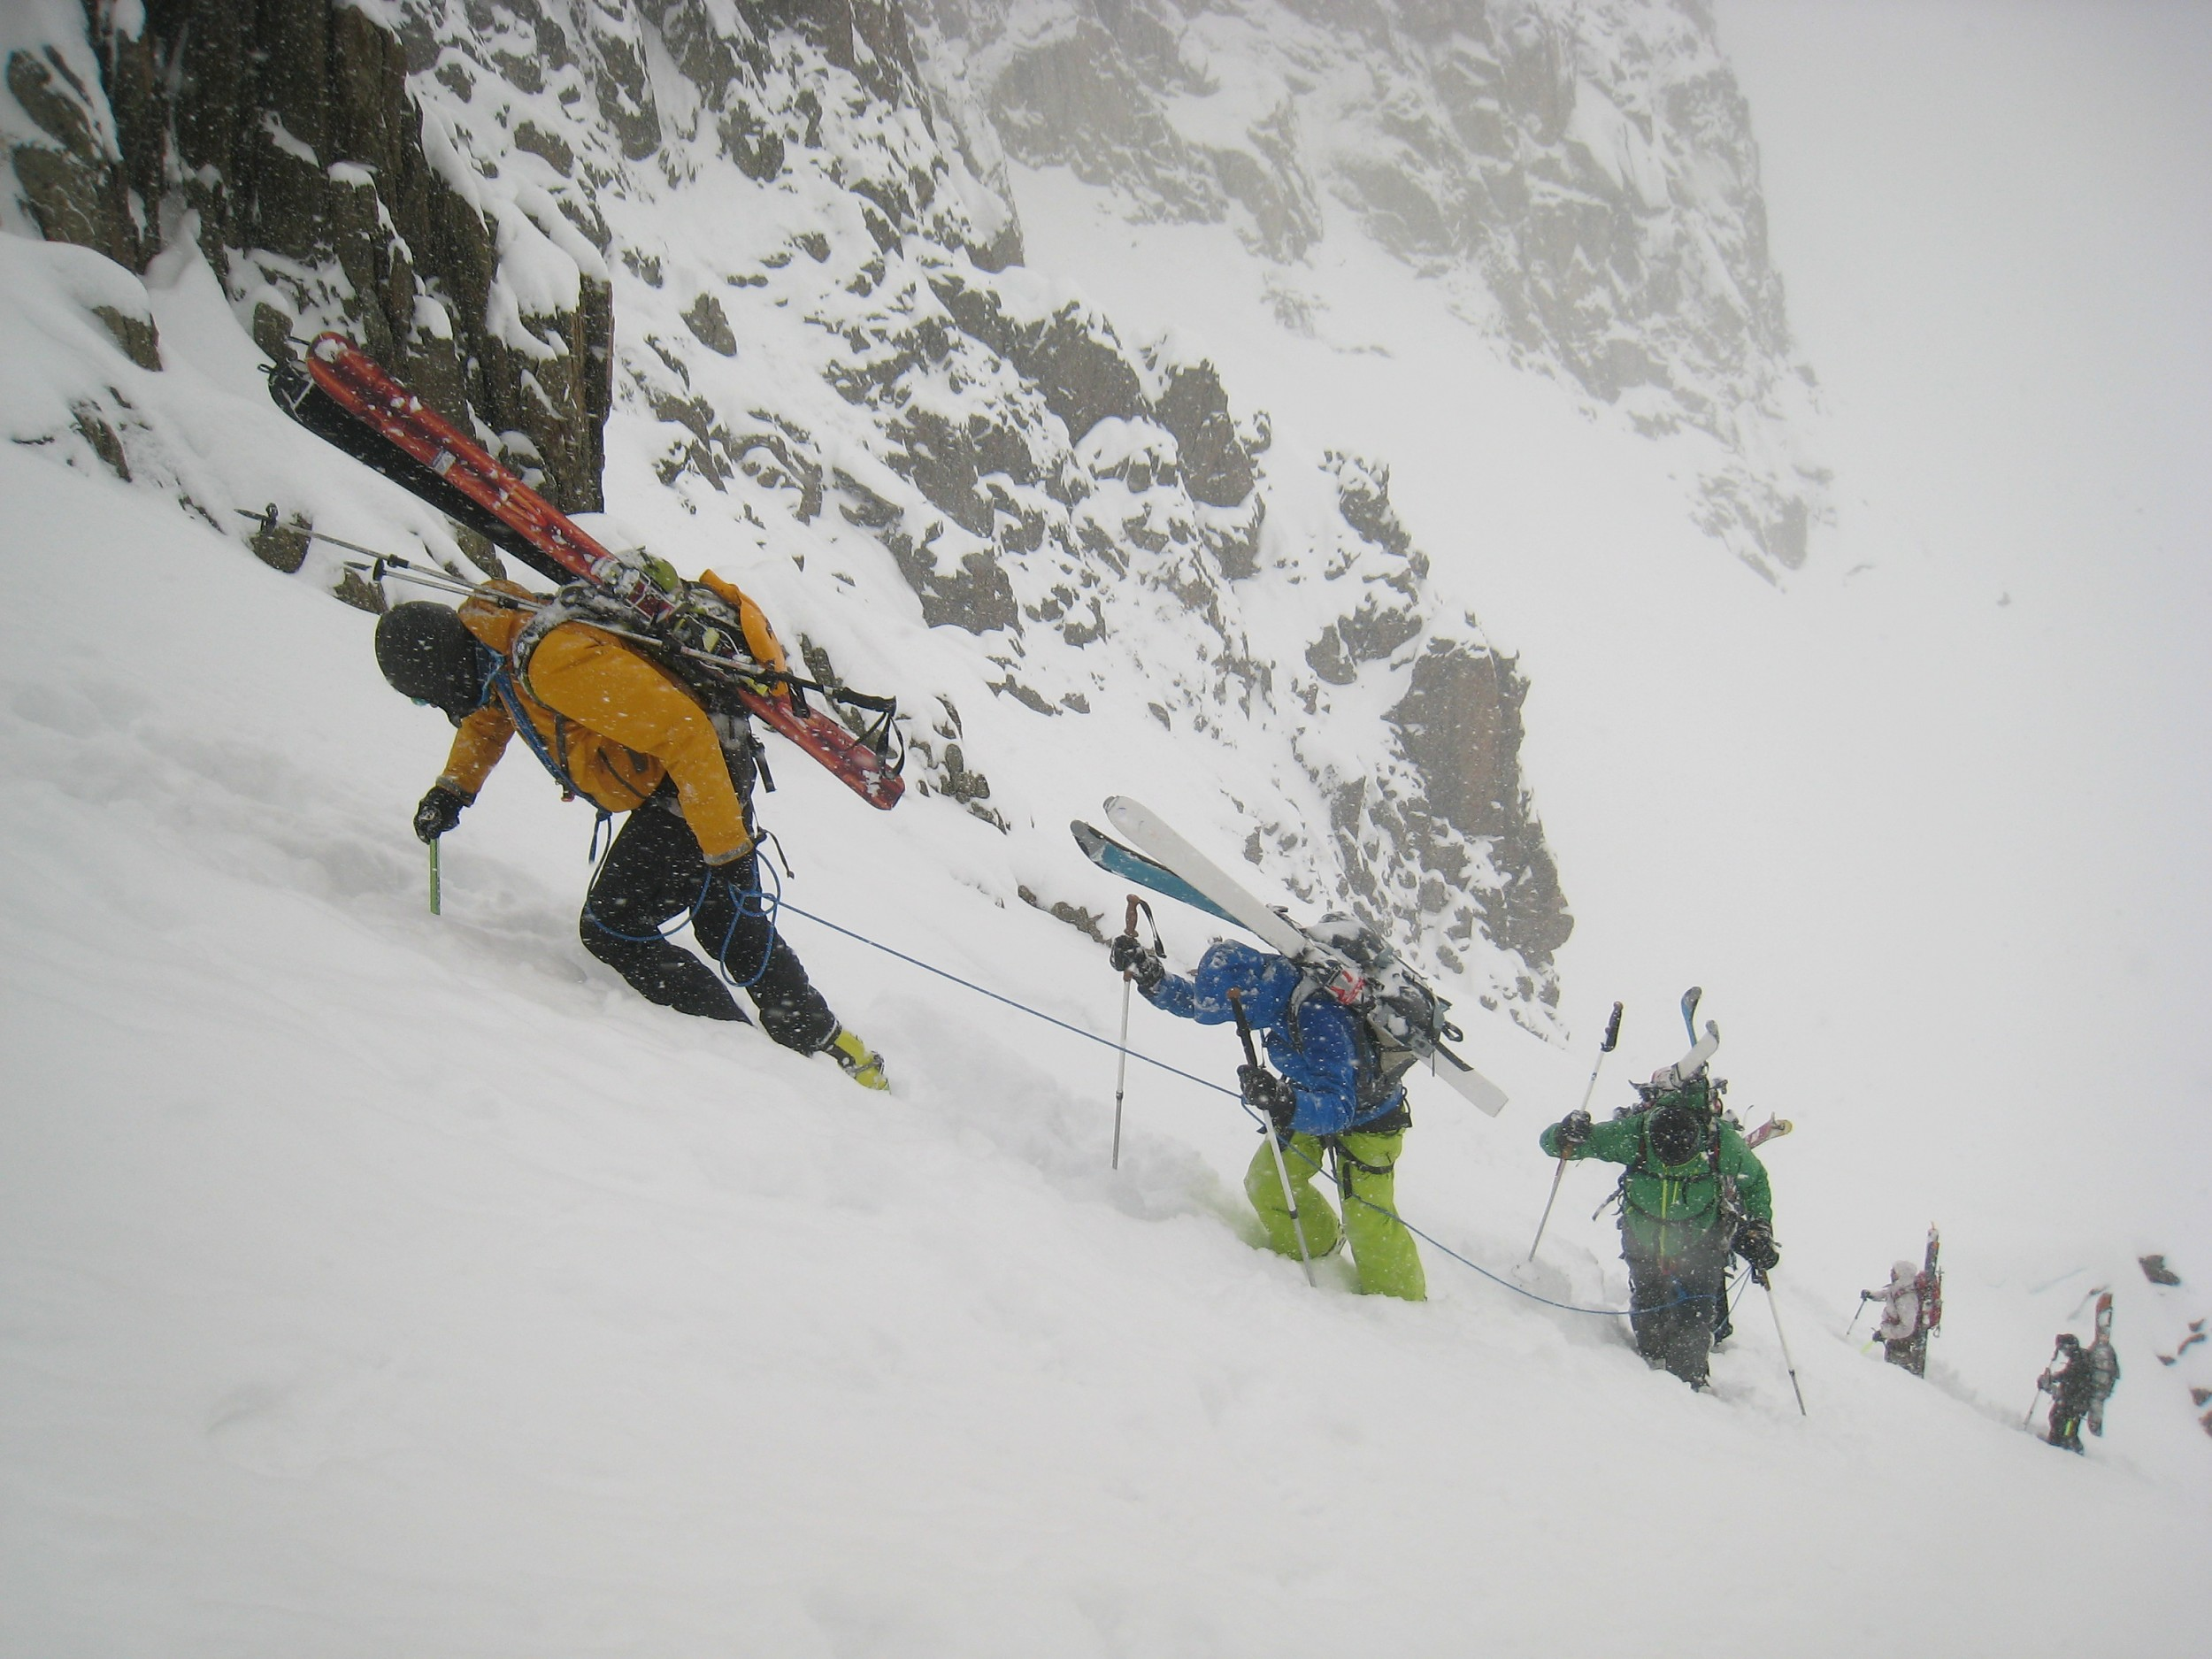 Ski touring course - Advanced